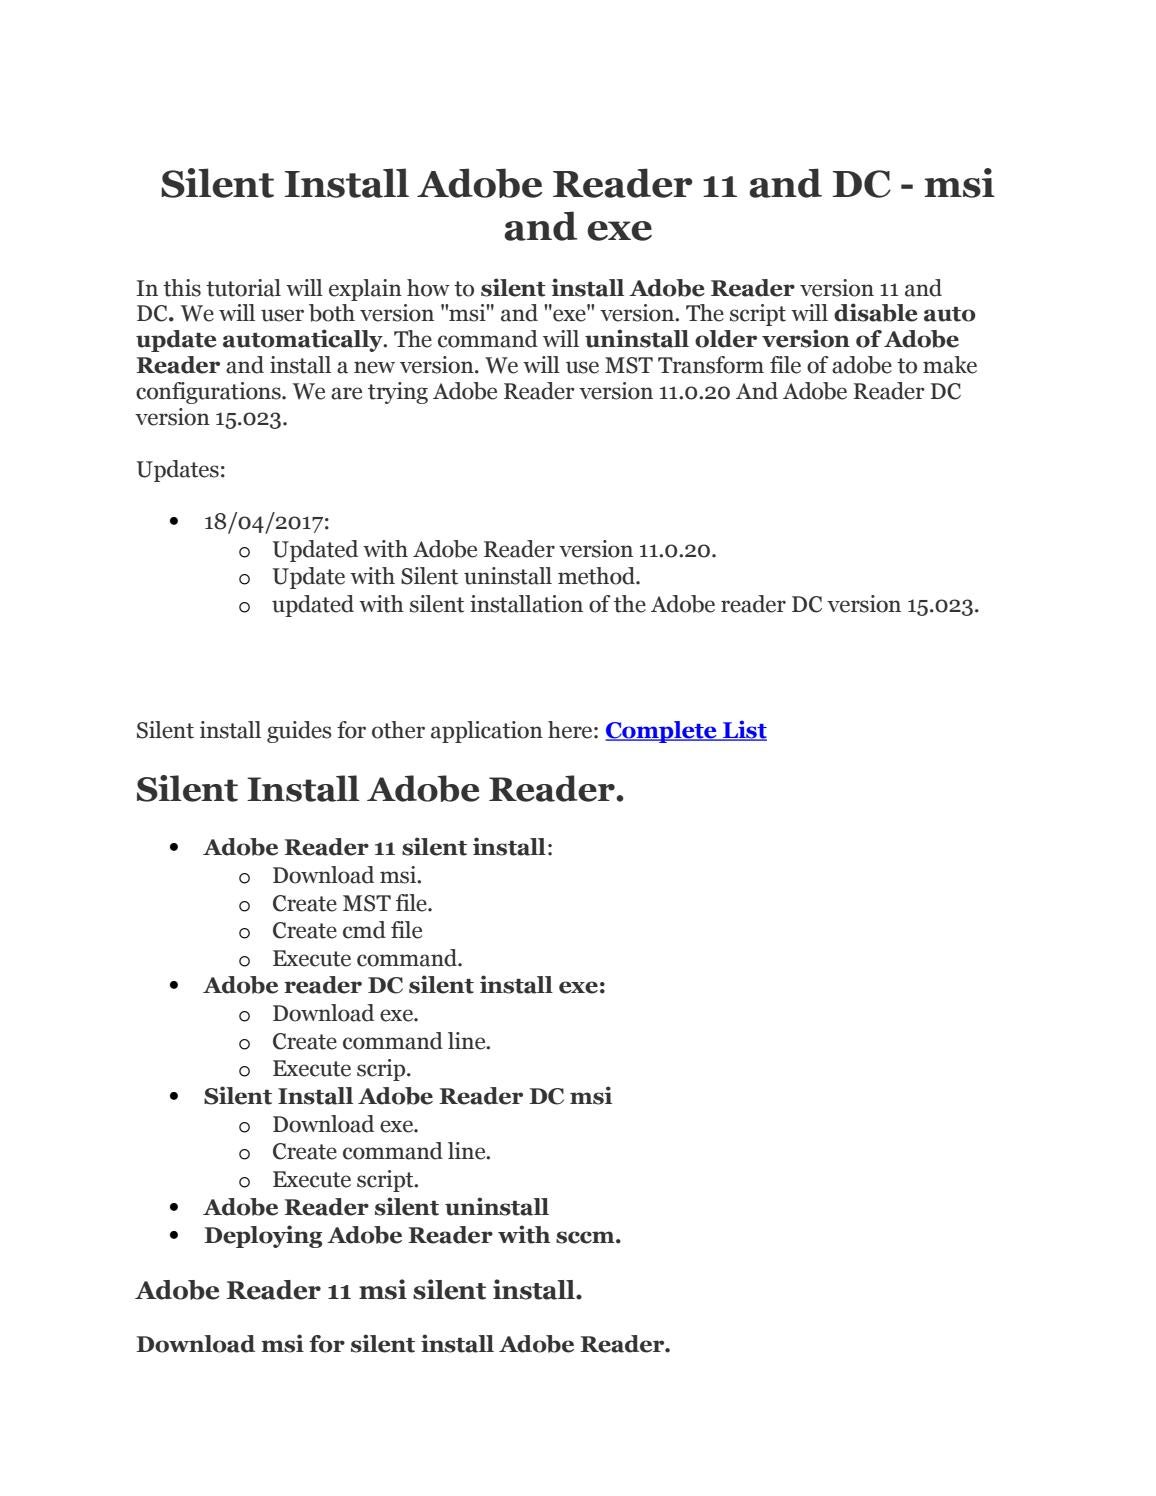 Adobe reader silent install by Get It Solutions - Issuu